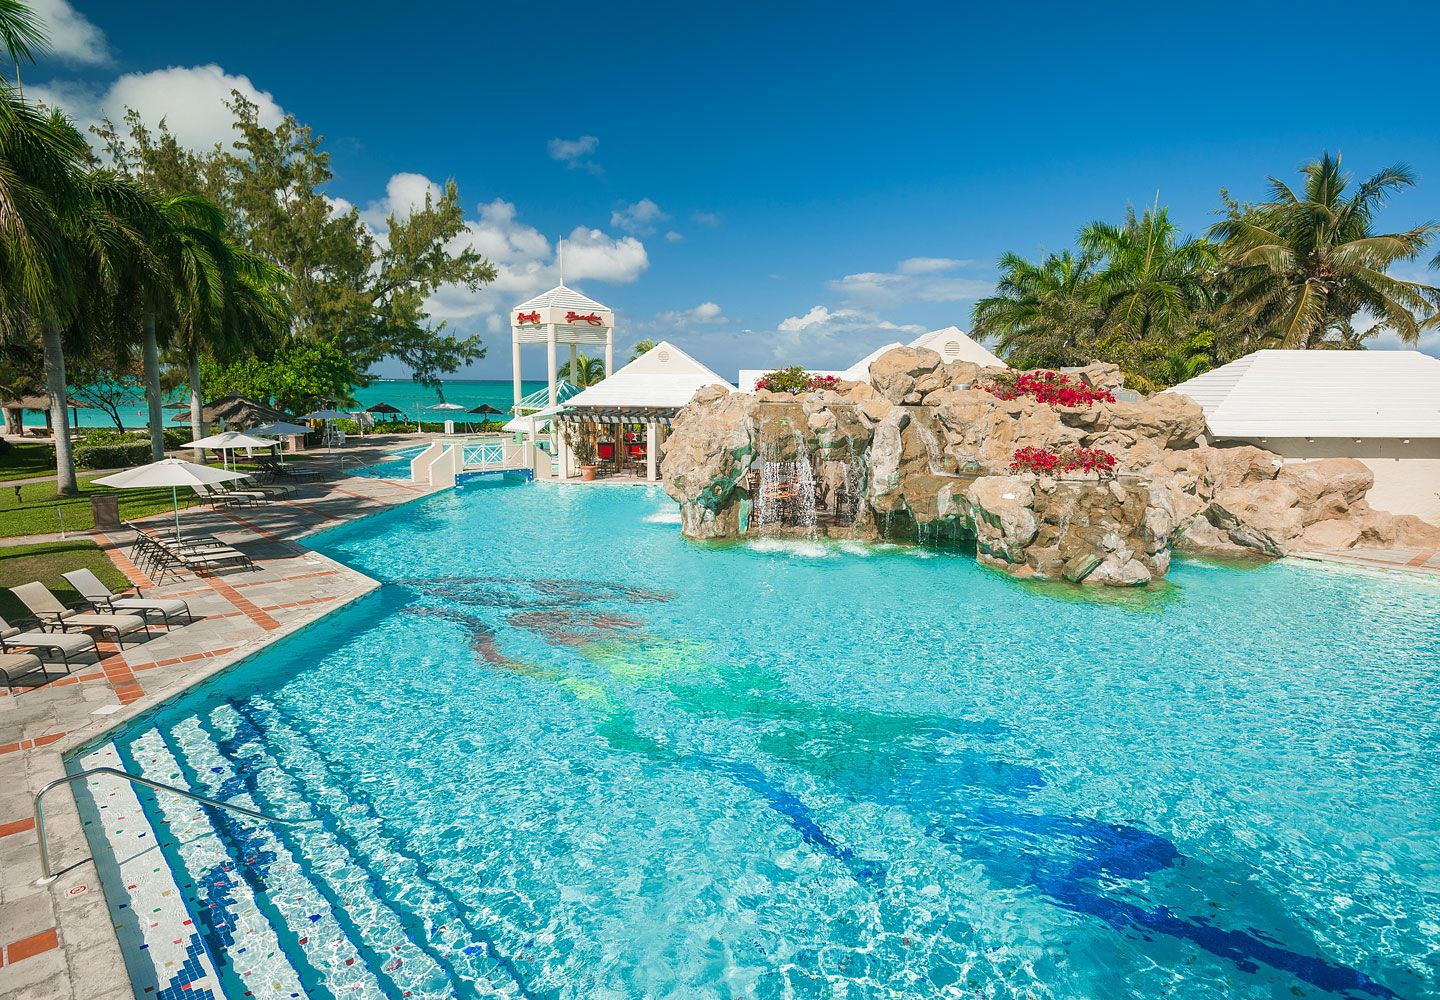 The Pool At Caribbean Village Overlooks Turquoise Seas Beaches